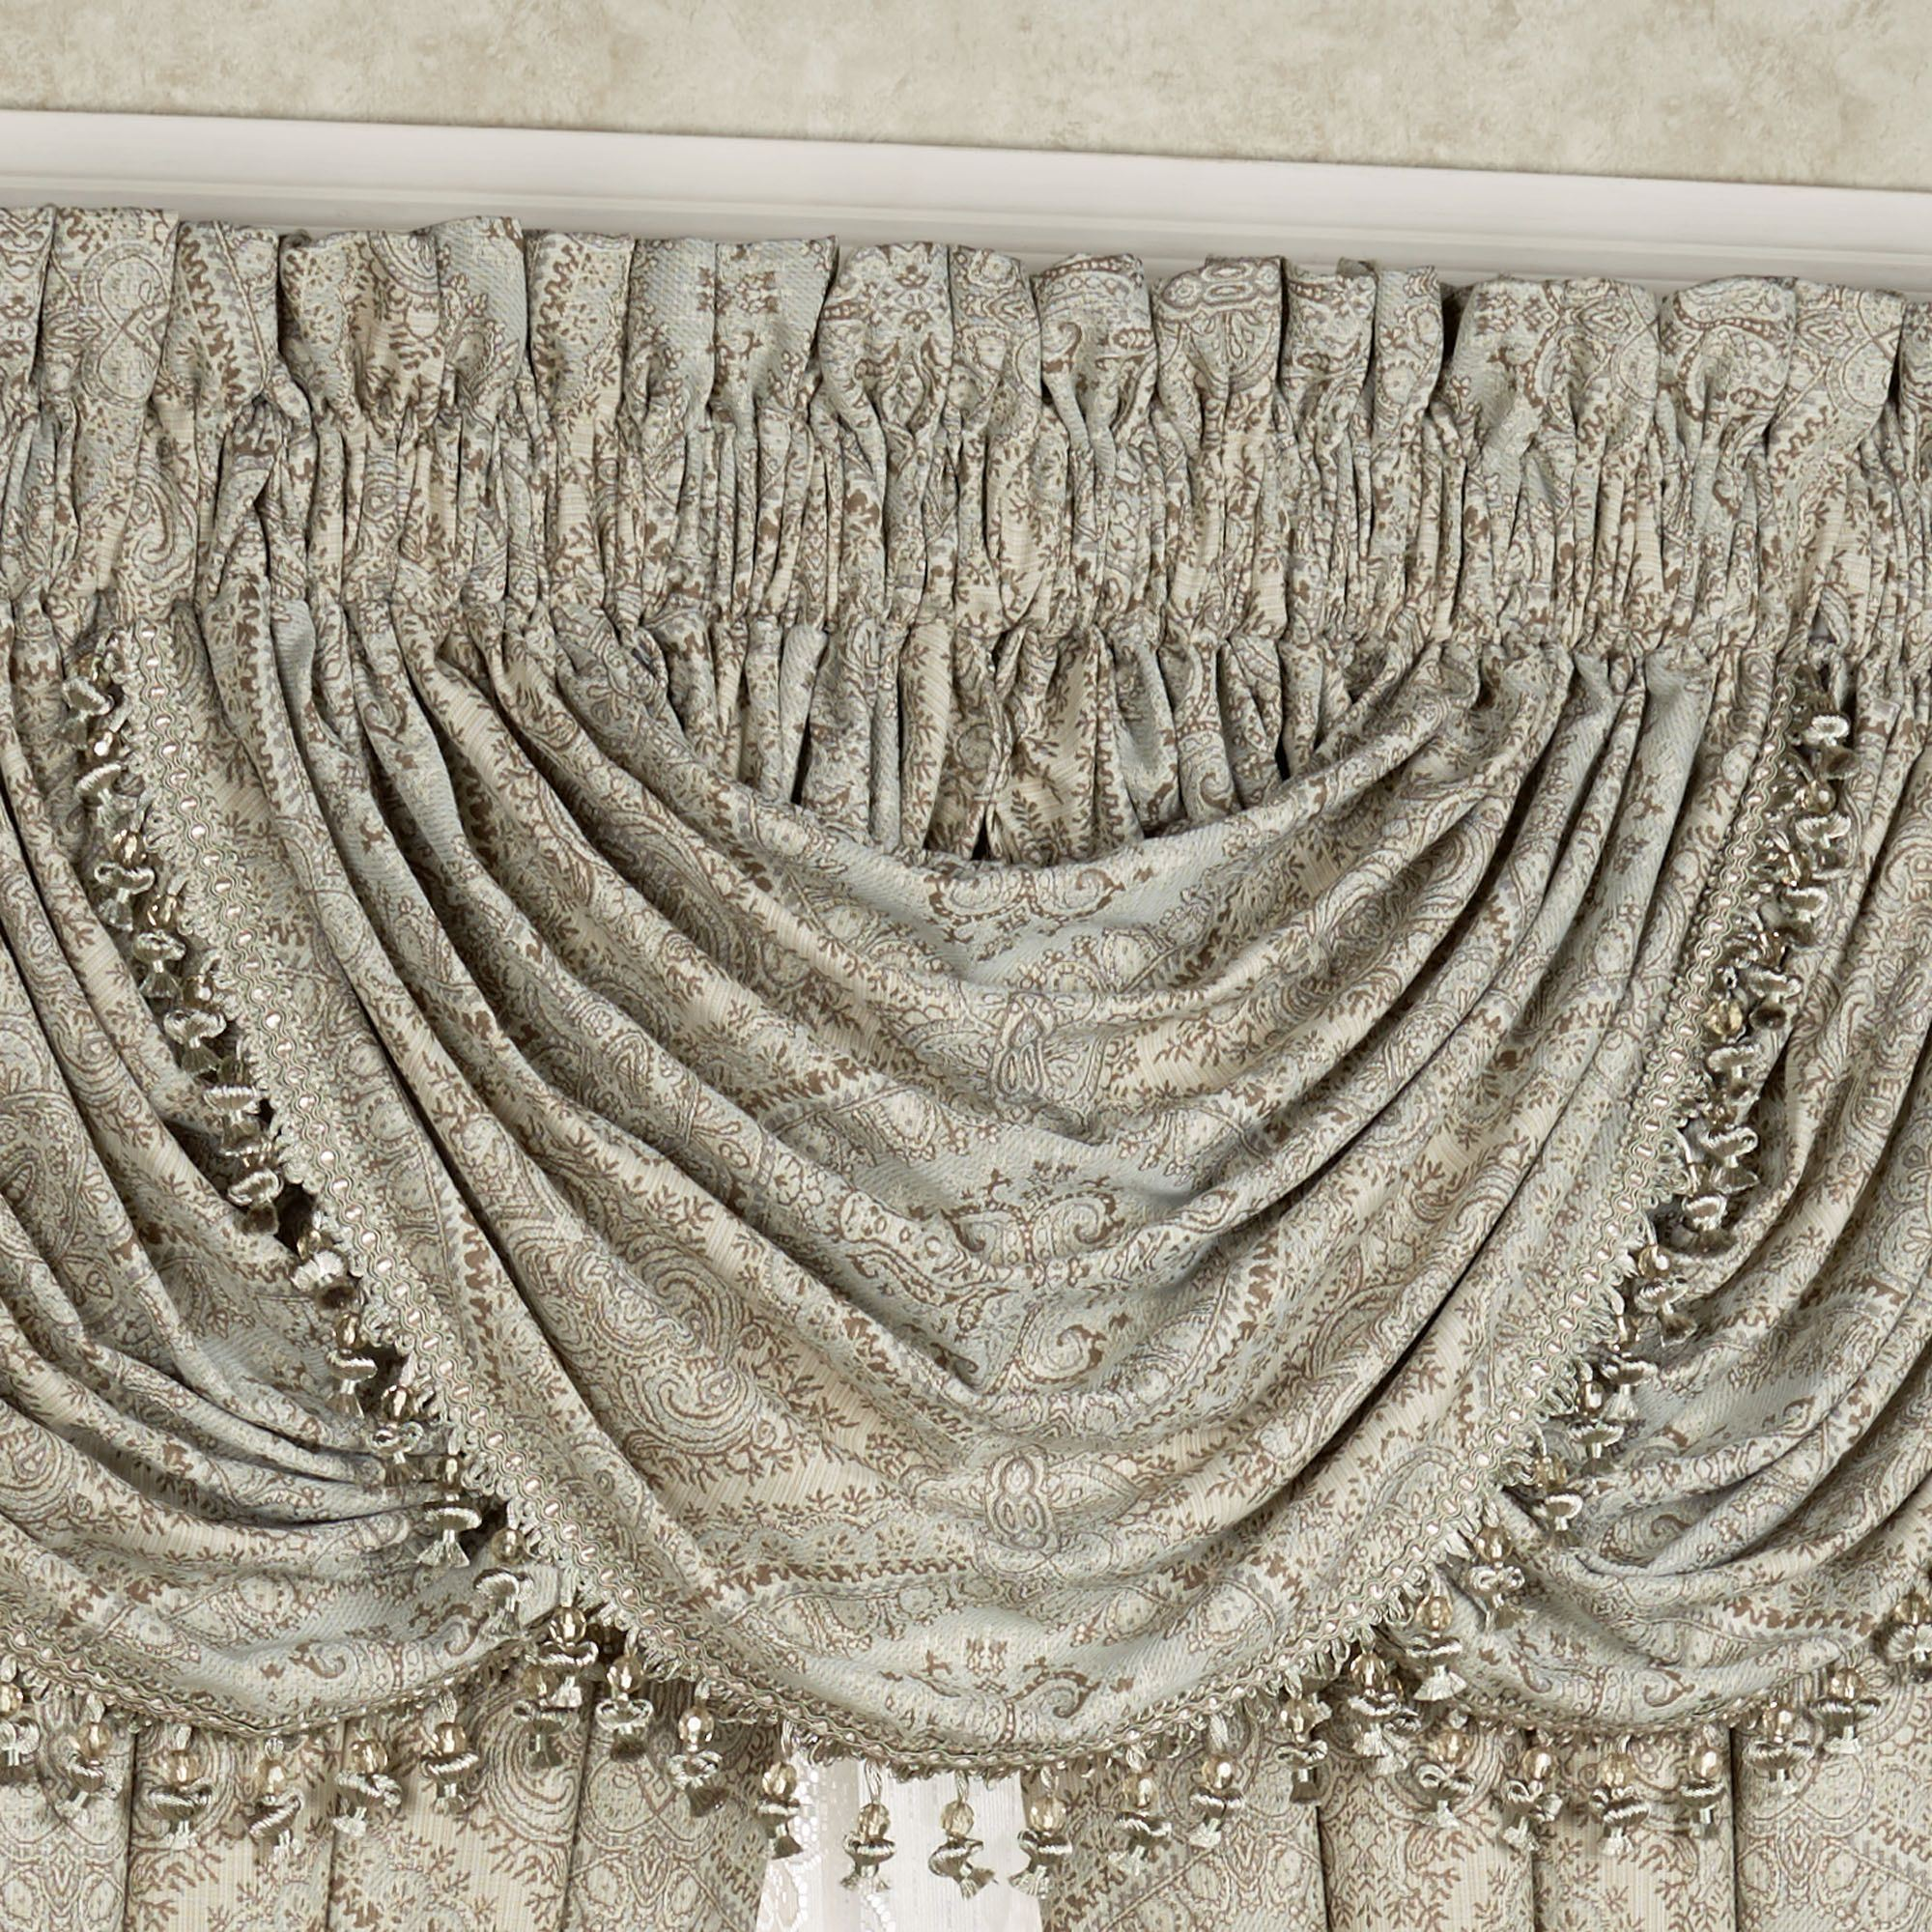 ogee waterfall p tailored valance curtain j by queen york new damask curtains x pair treatment window gianna orchid